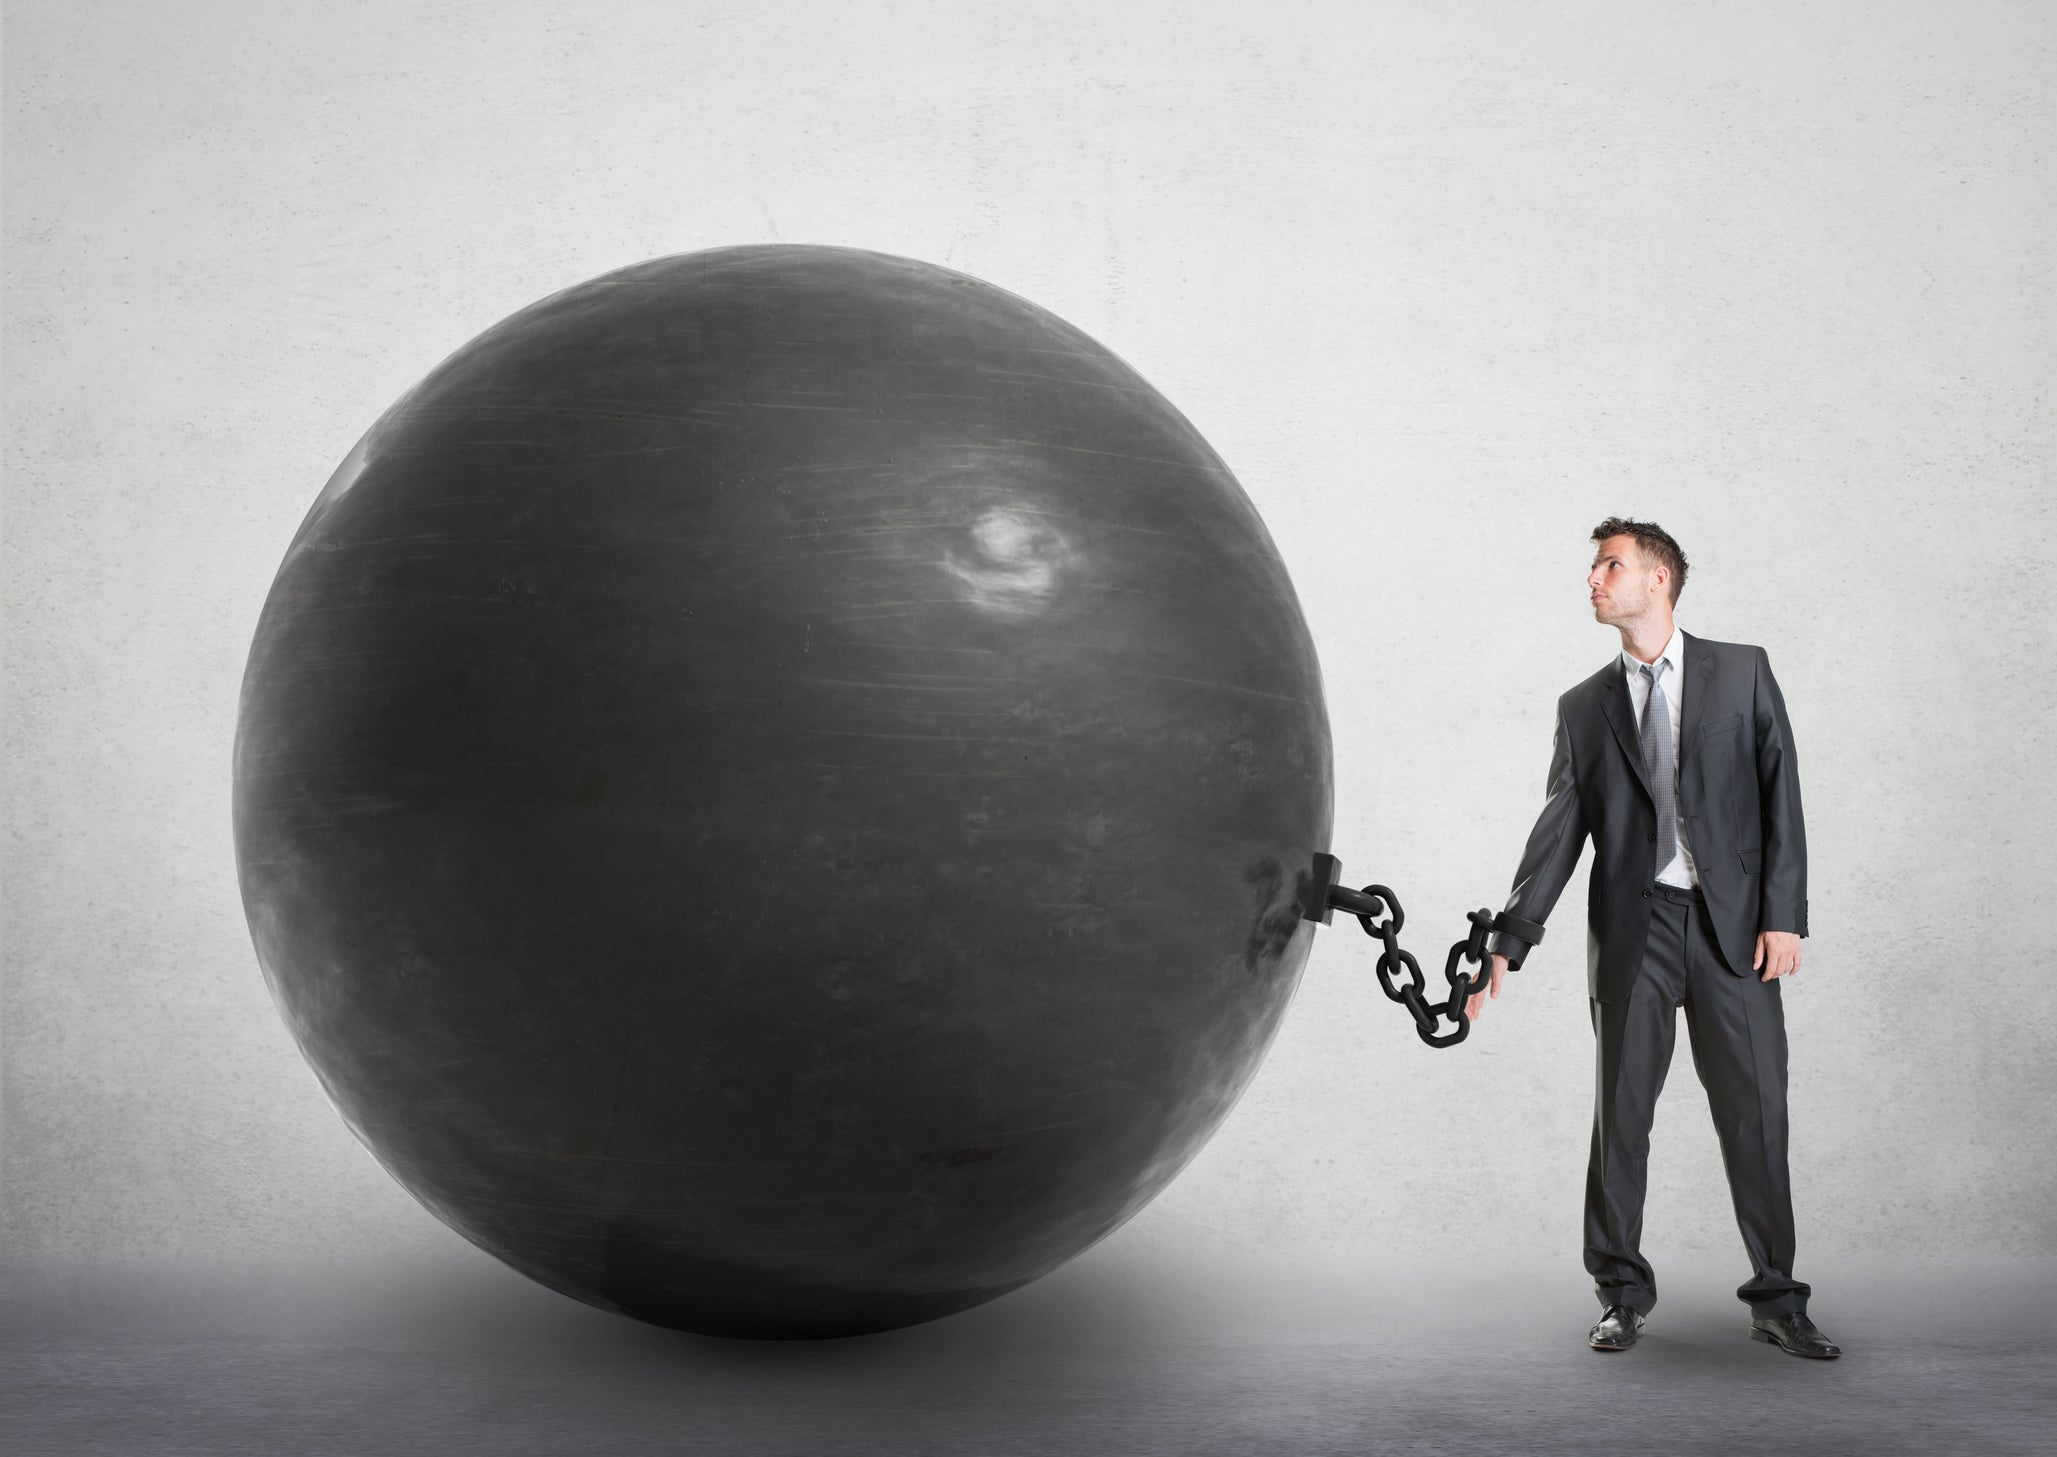 A man in a suit is shackled to a huge black ball that's bigger than he is.